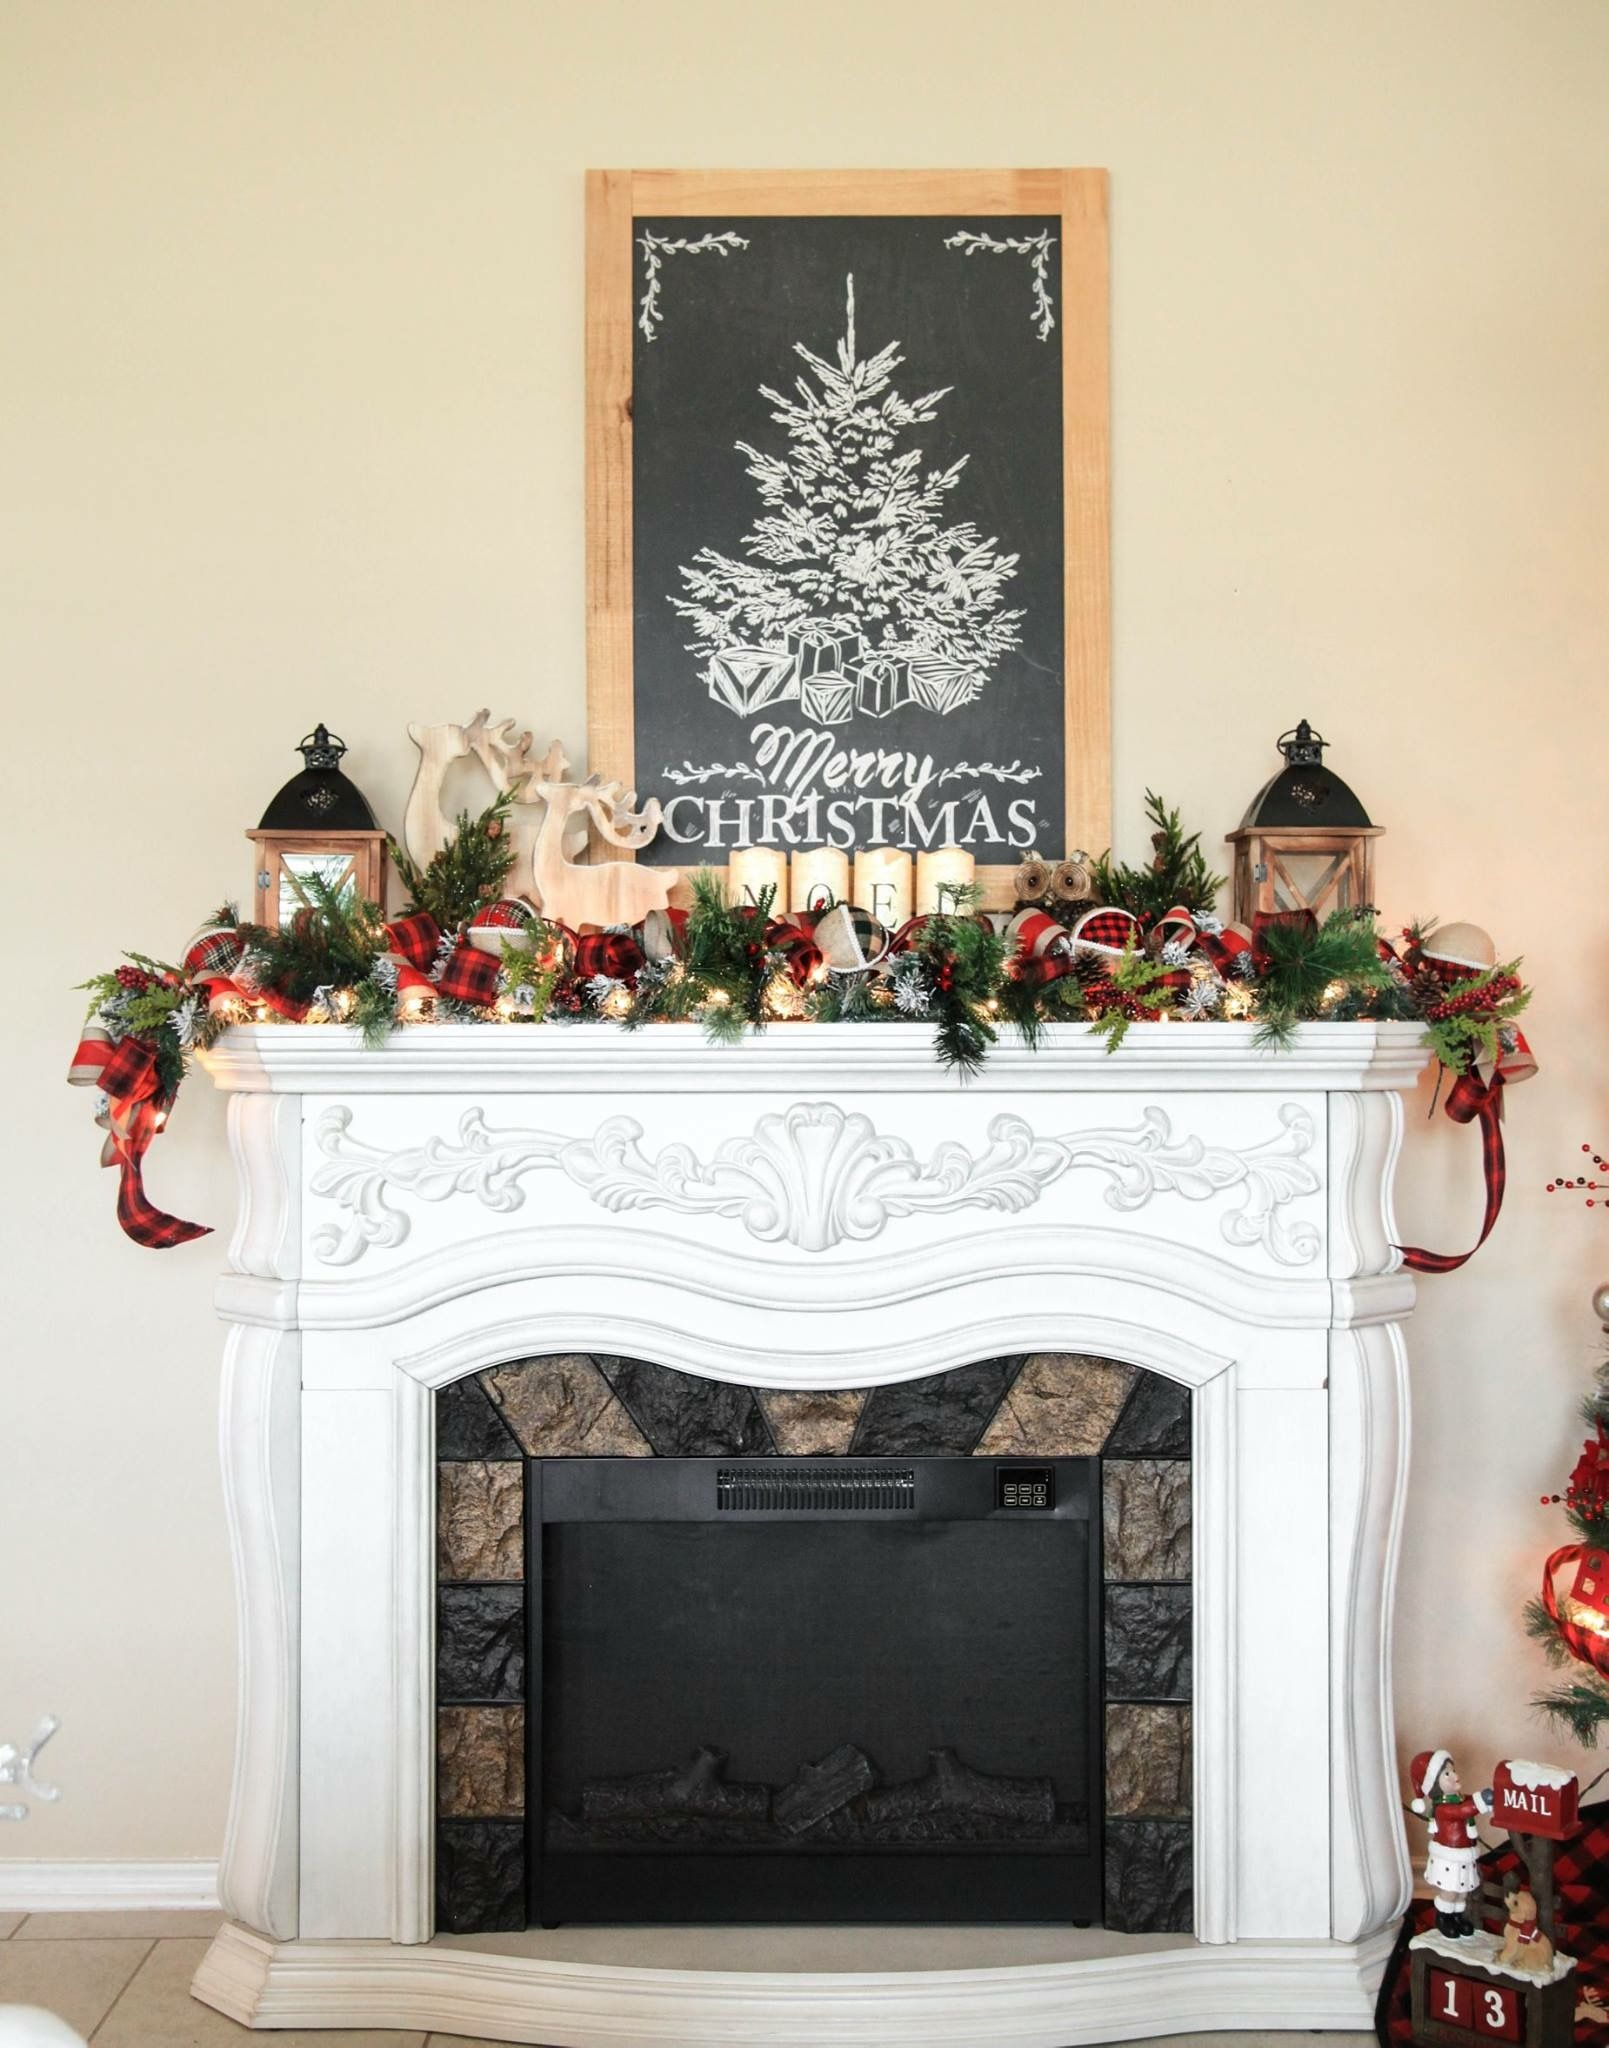 Decor Ideas, Holiday Decor, Christmas Inspiration